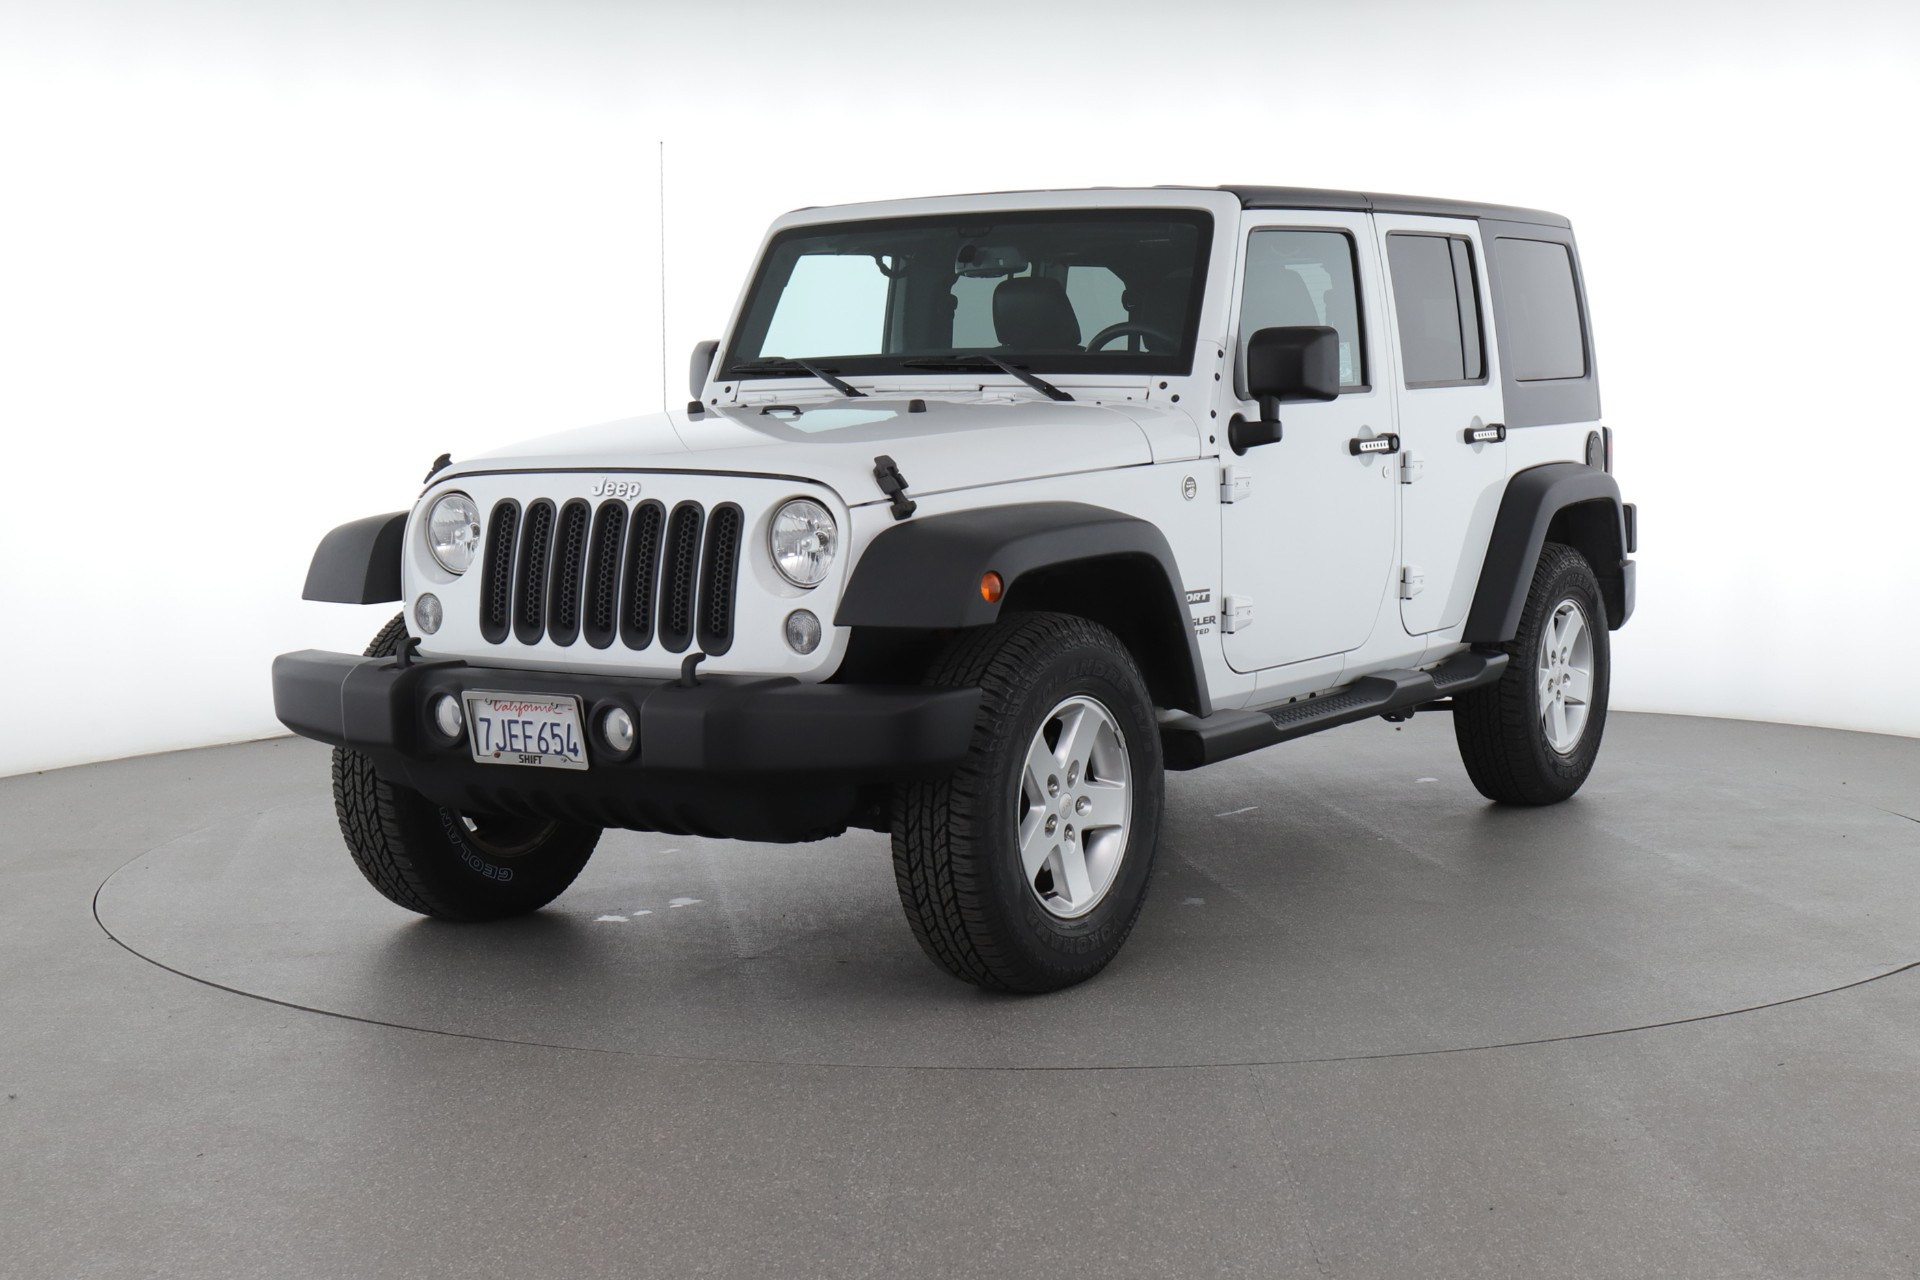 2015 Jeep Wrangler Unlimited Sport (from $35,200)